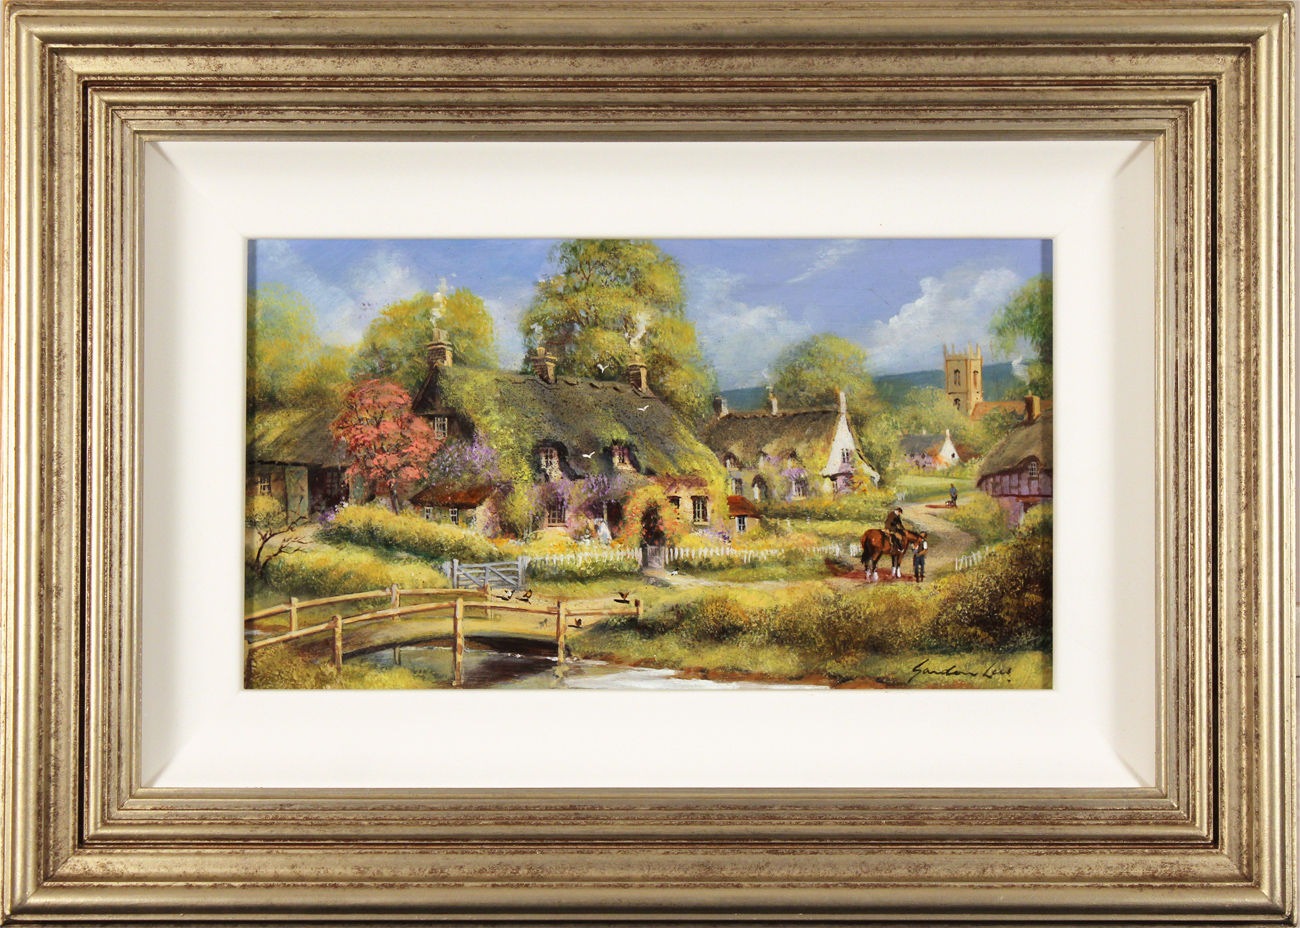 Gordon Lees, Original oil painting on panel, Spring Afternoon, The Cotswolds, click to enlarge